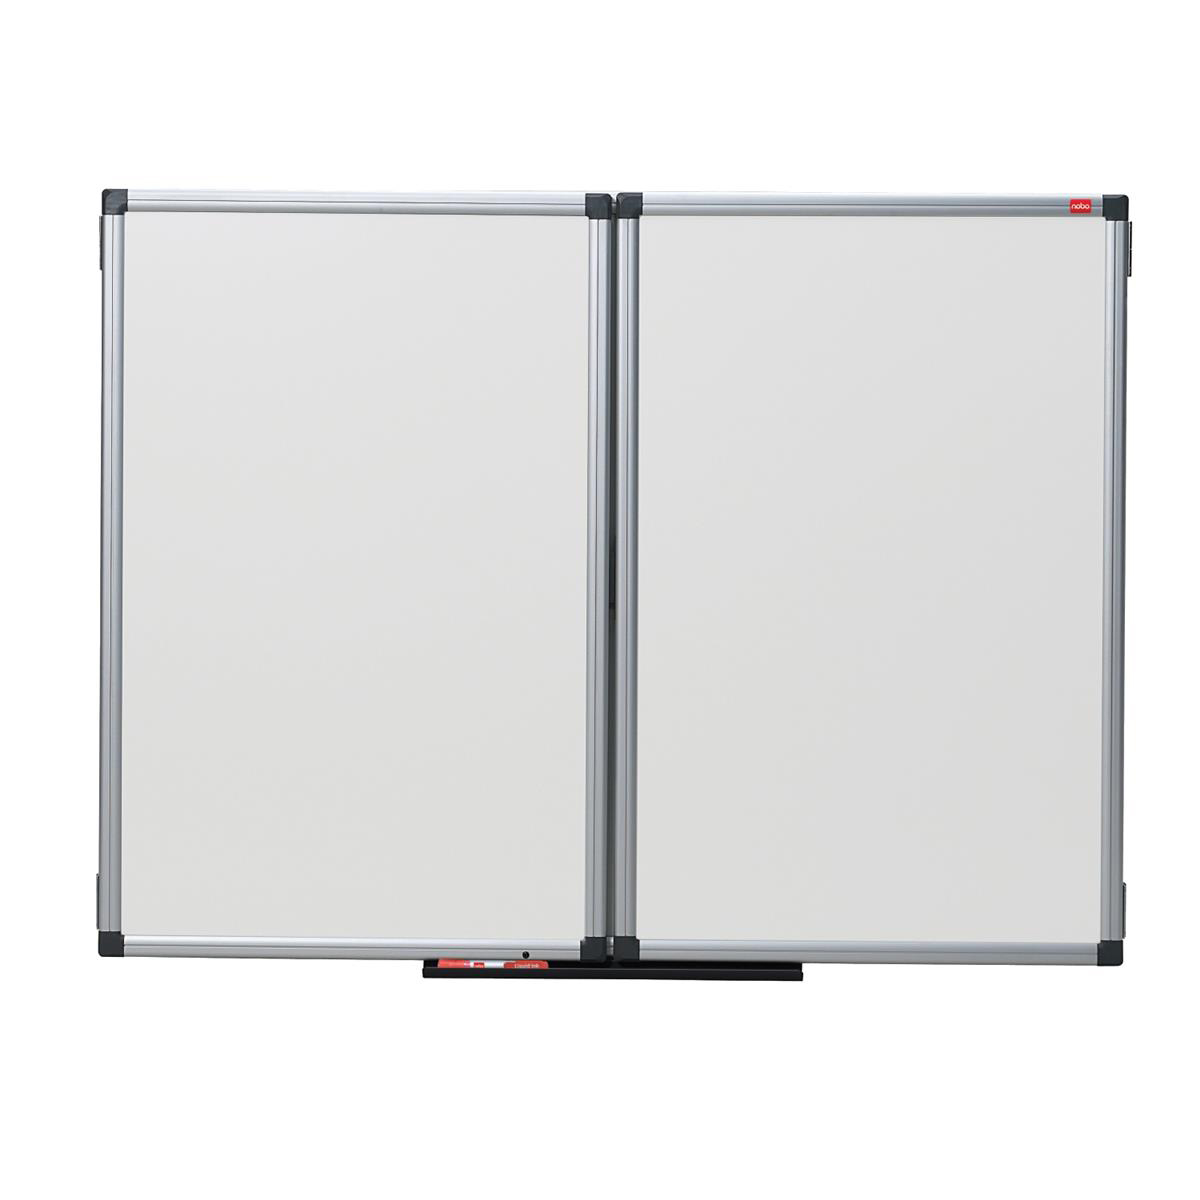 Nobo Confidential Drywipe Whiteboard System Lockable 3 Boards for 5 Surfaces W1200xD900mm Ref 31630514